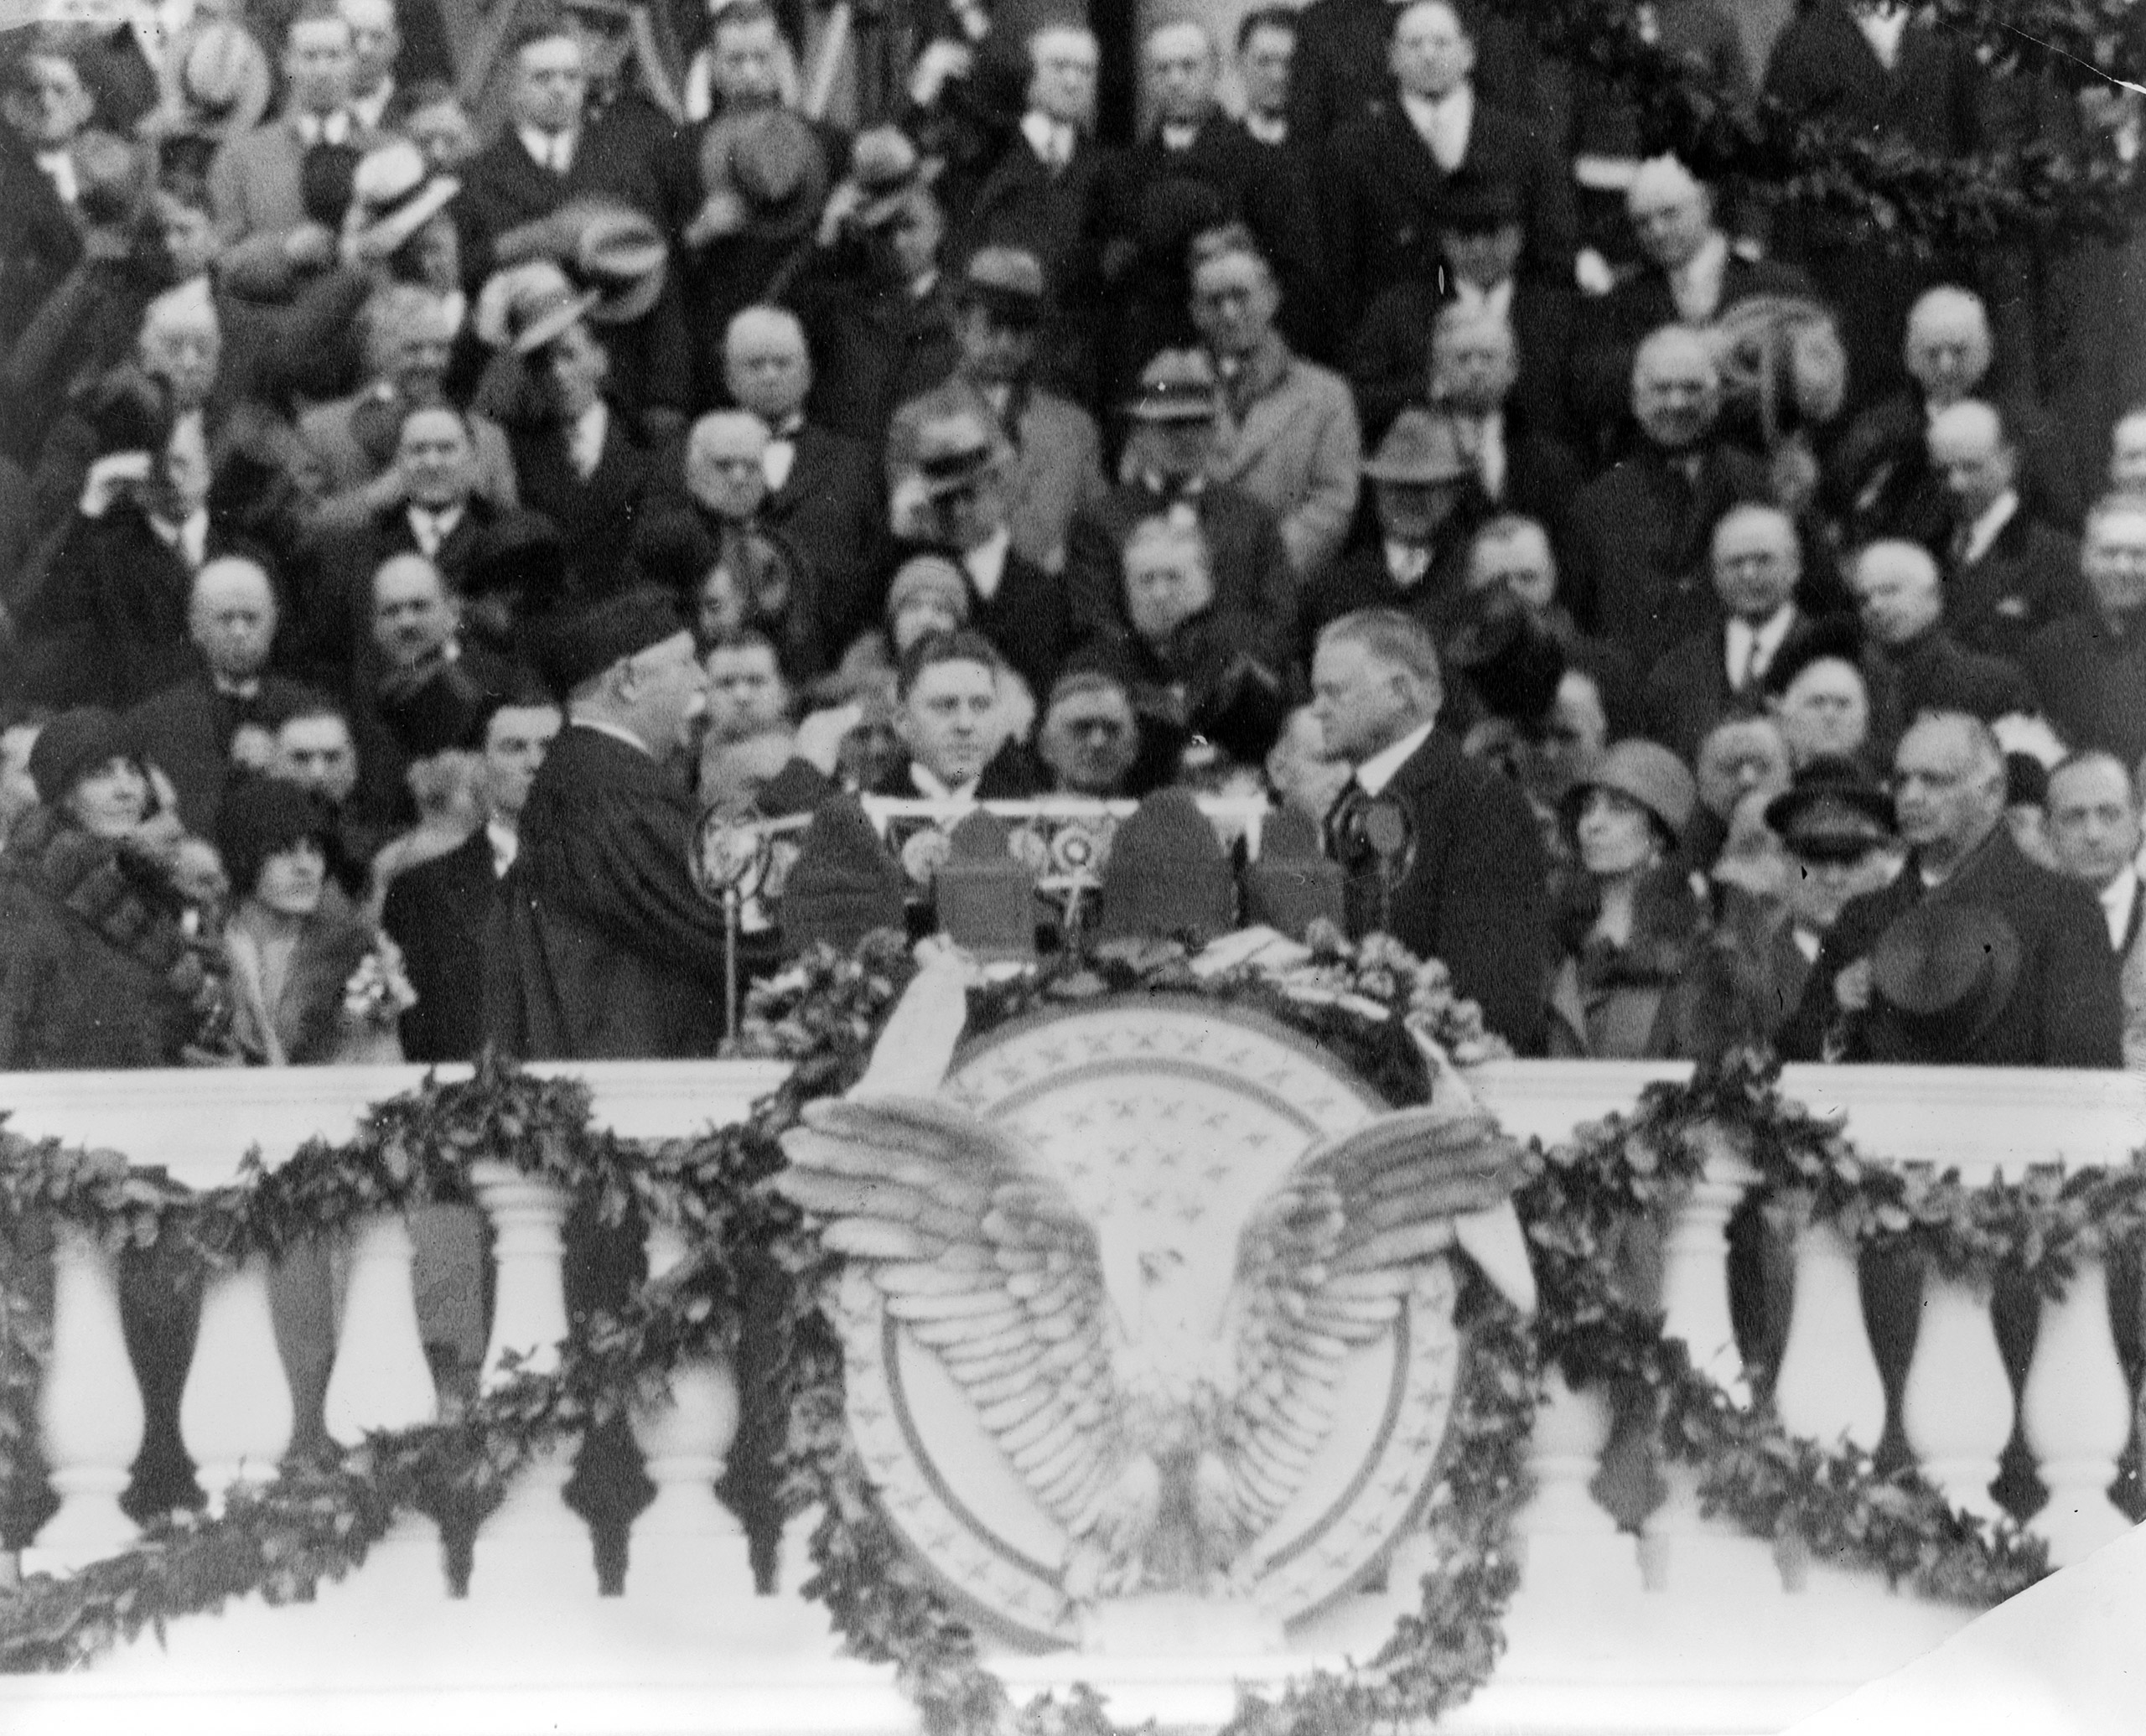 Chief Justice William H. Taft administering the oath of office to Herbert Hoover on the east portico of the U.S. Capitol, March 4, 1929.